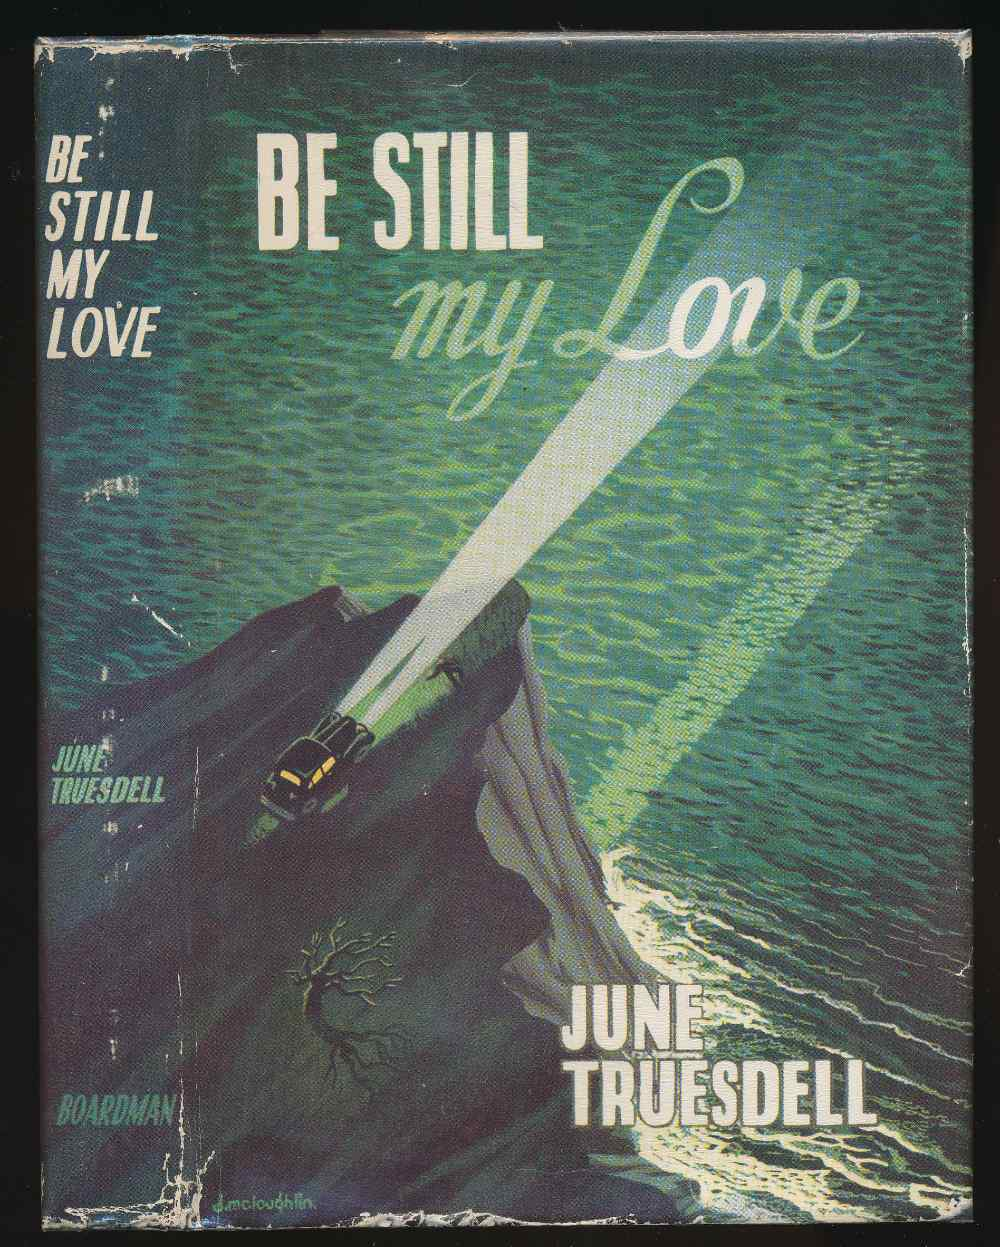 Be still, my love